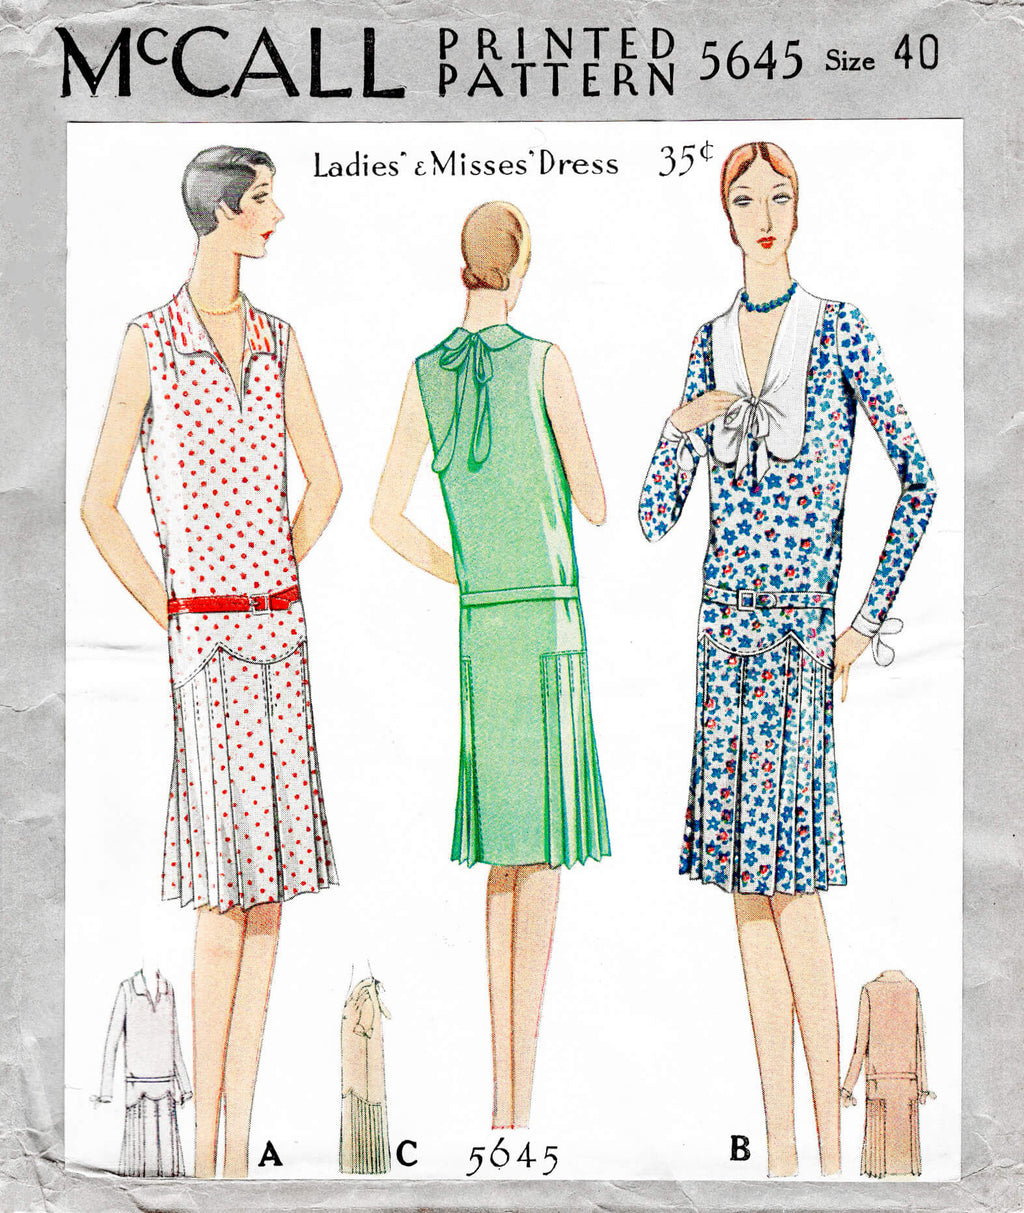 McCall 5645 1920s 1928 casual picnic day dress drop waist style vintage sewing pattern reproduction